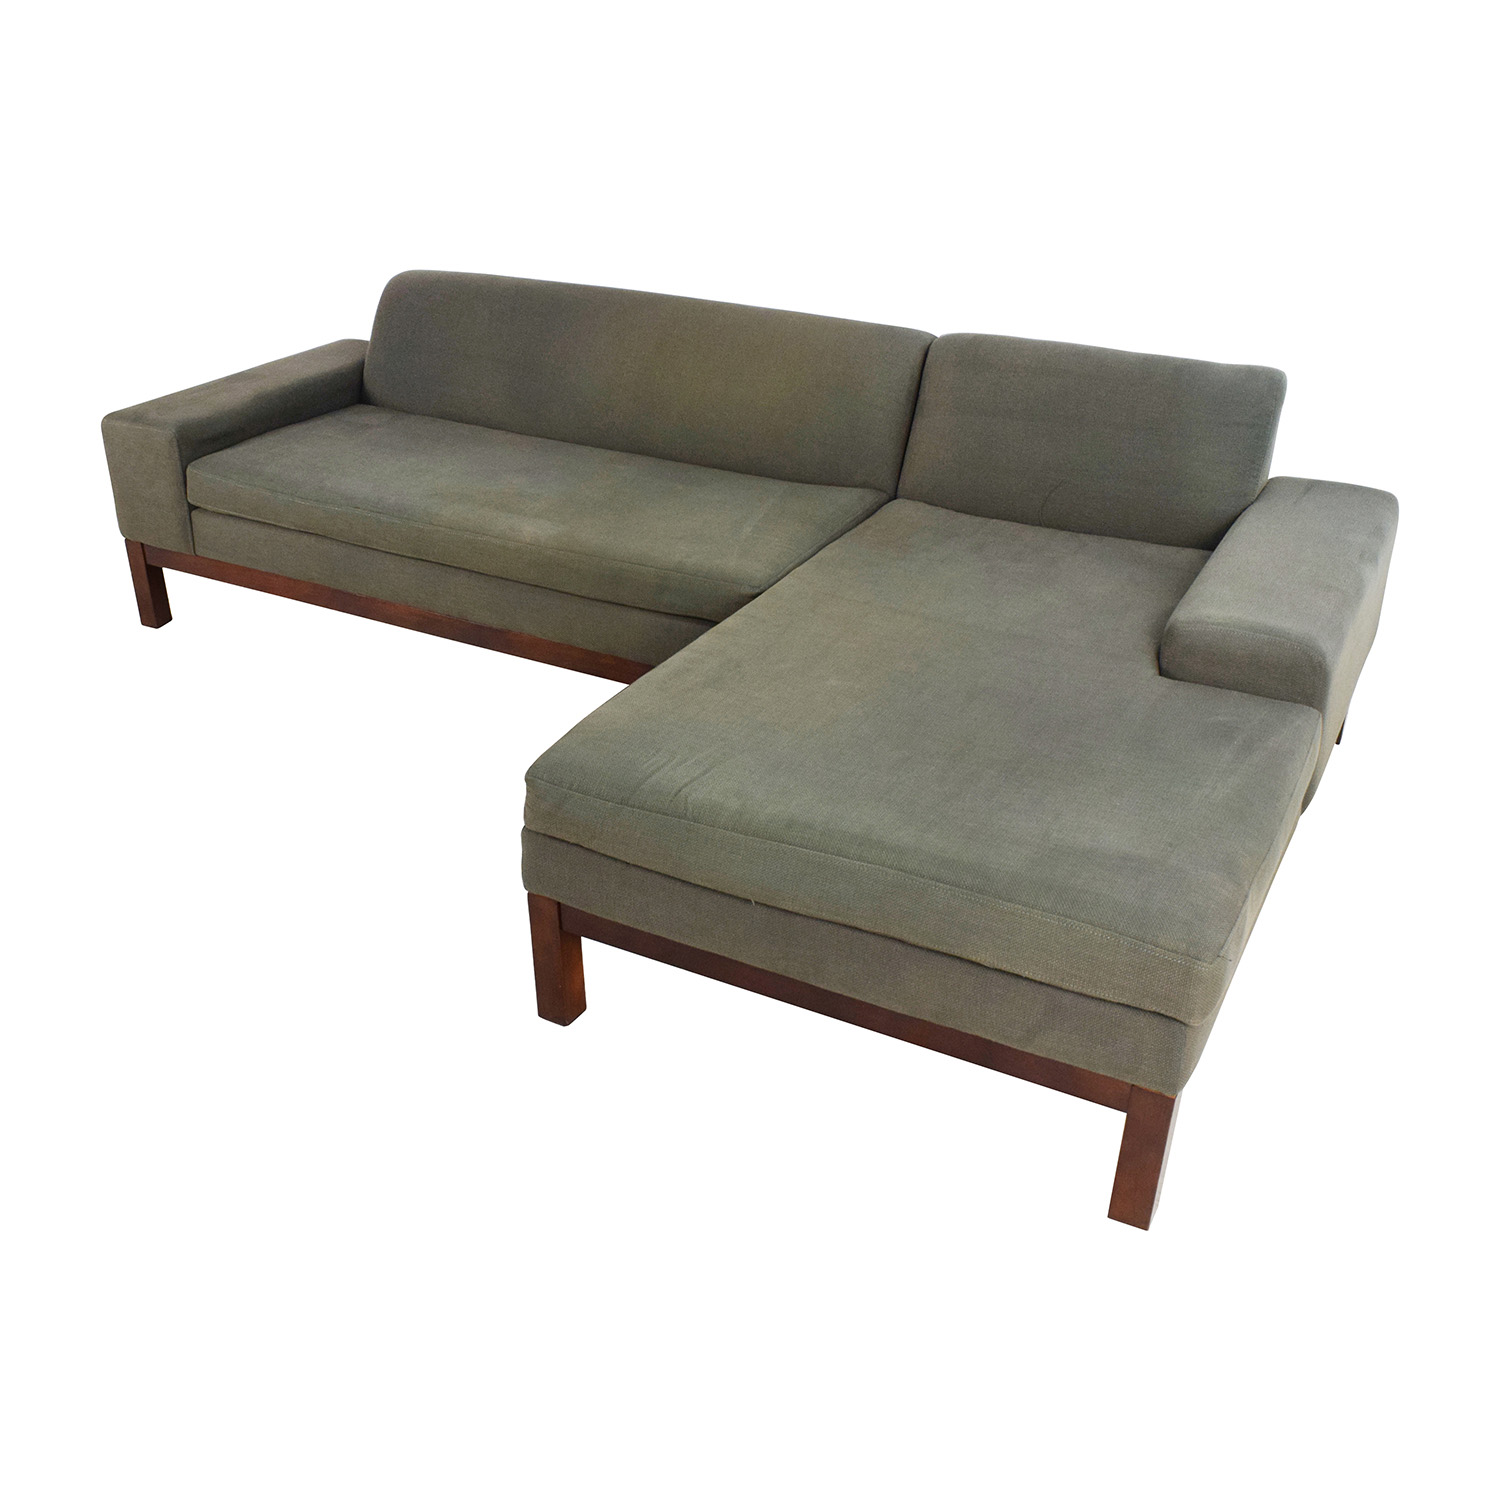 used west elm furniture. West Elm Lorimer Green Sectional Used Furniture O